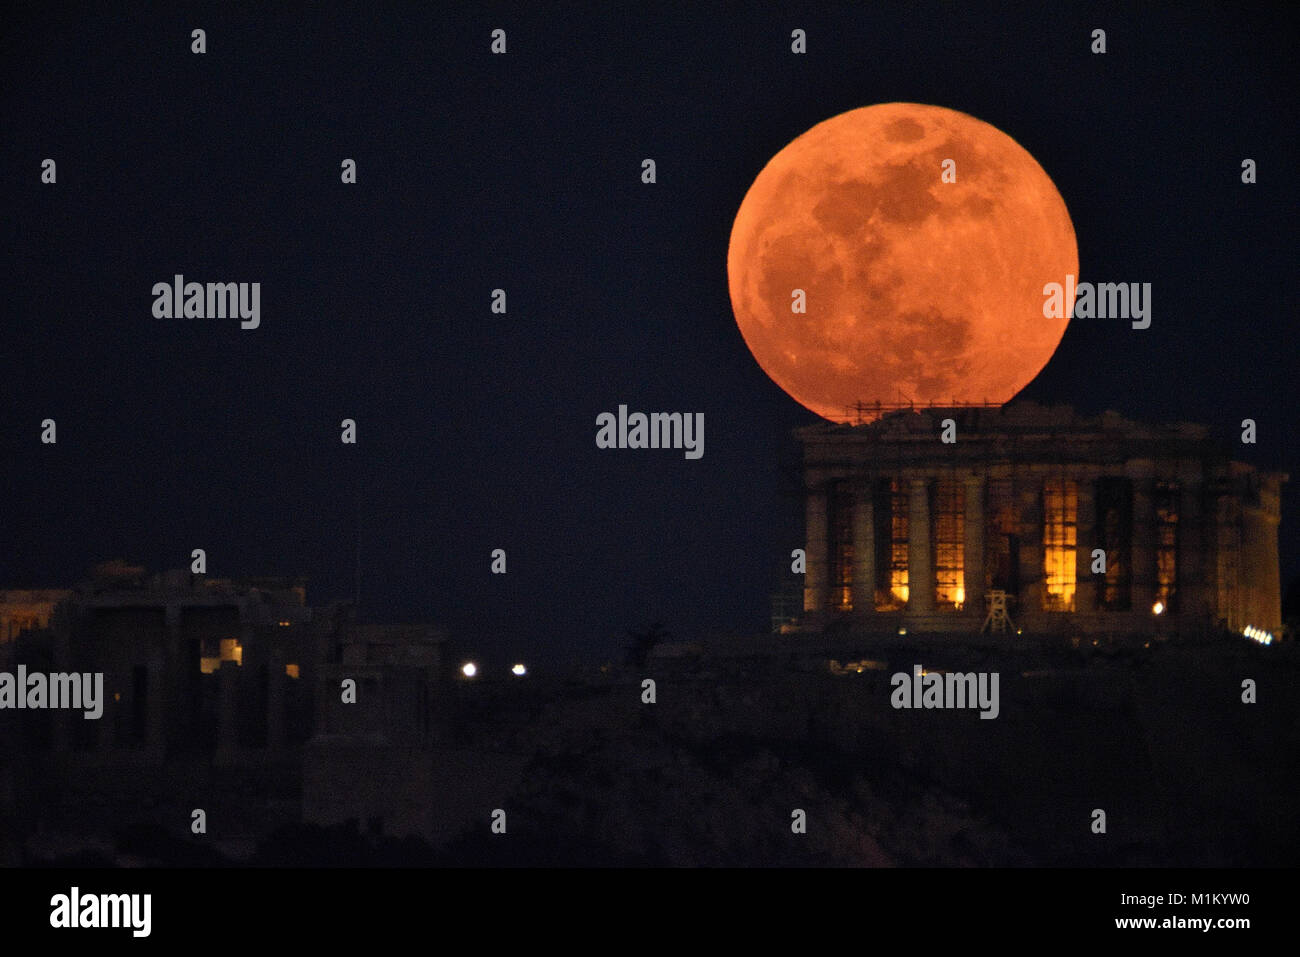 Athens, Greece, 31st January, 2018. Super blue blood moon rises over the Acropolis of Athens in Athens, Greece. - Stock Image